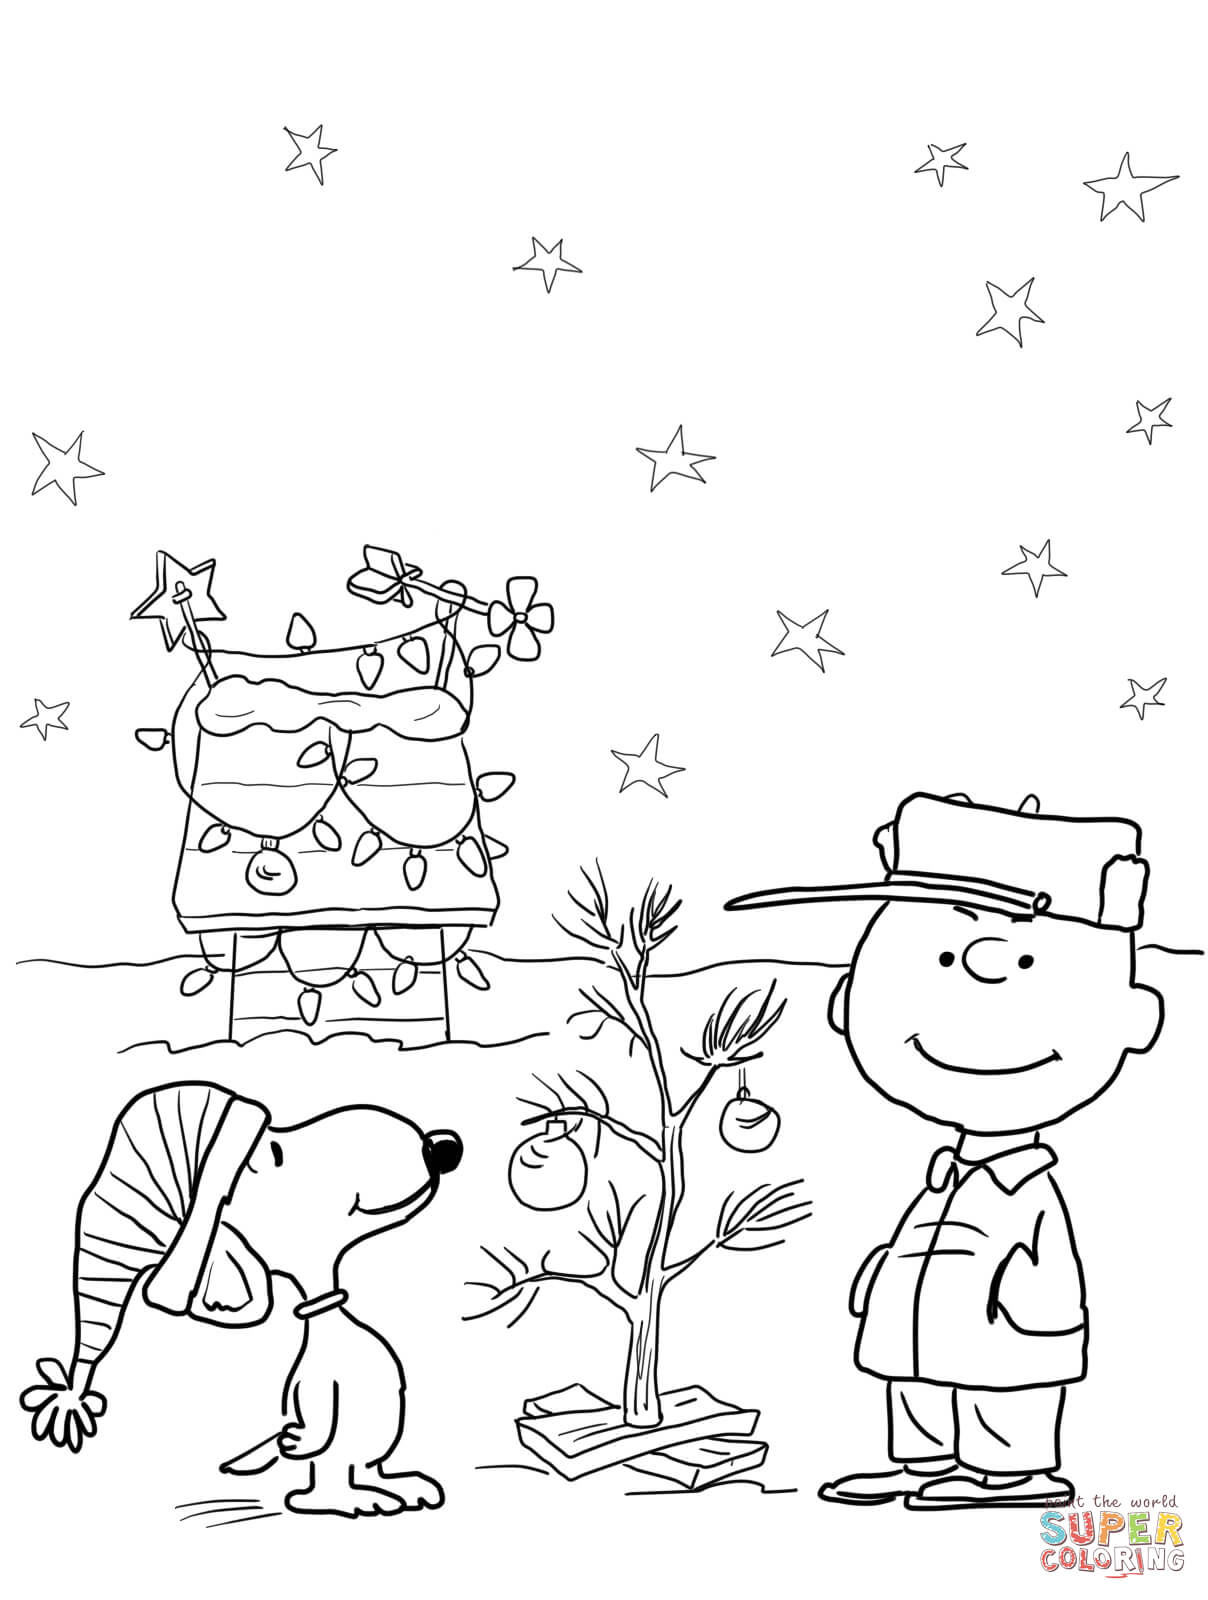 Charlie Brown Christmas Coloring Page | Free Printable Coloring Pages - Xmas Coloring Pages Free Printable